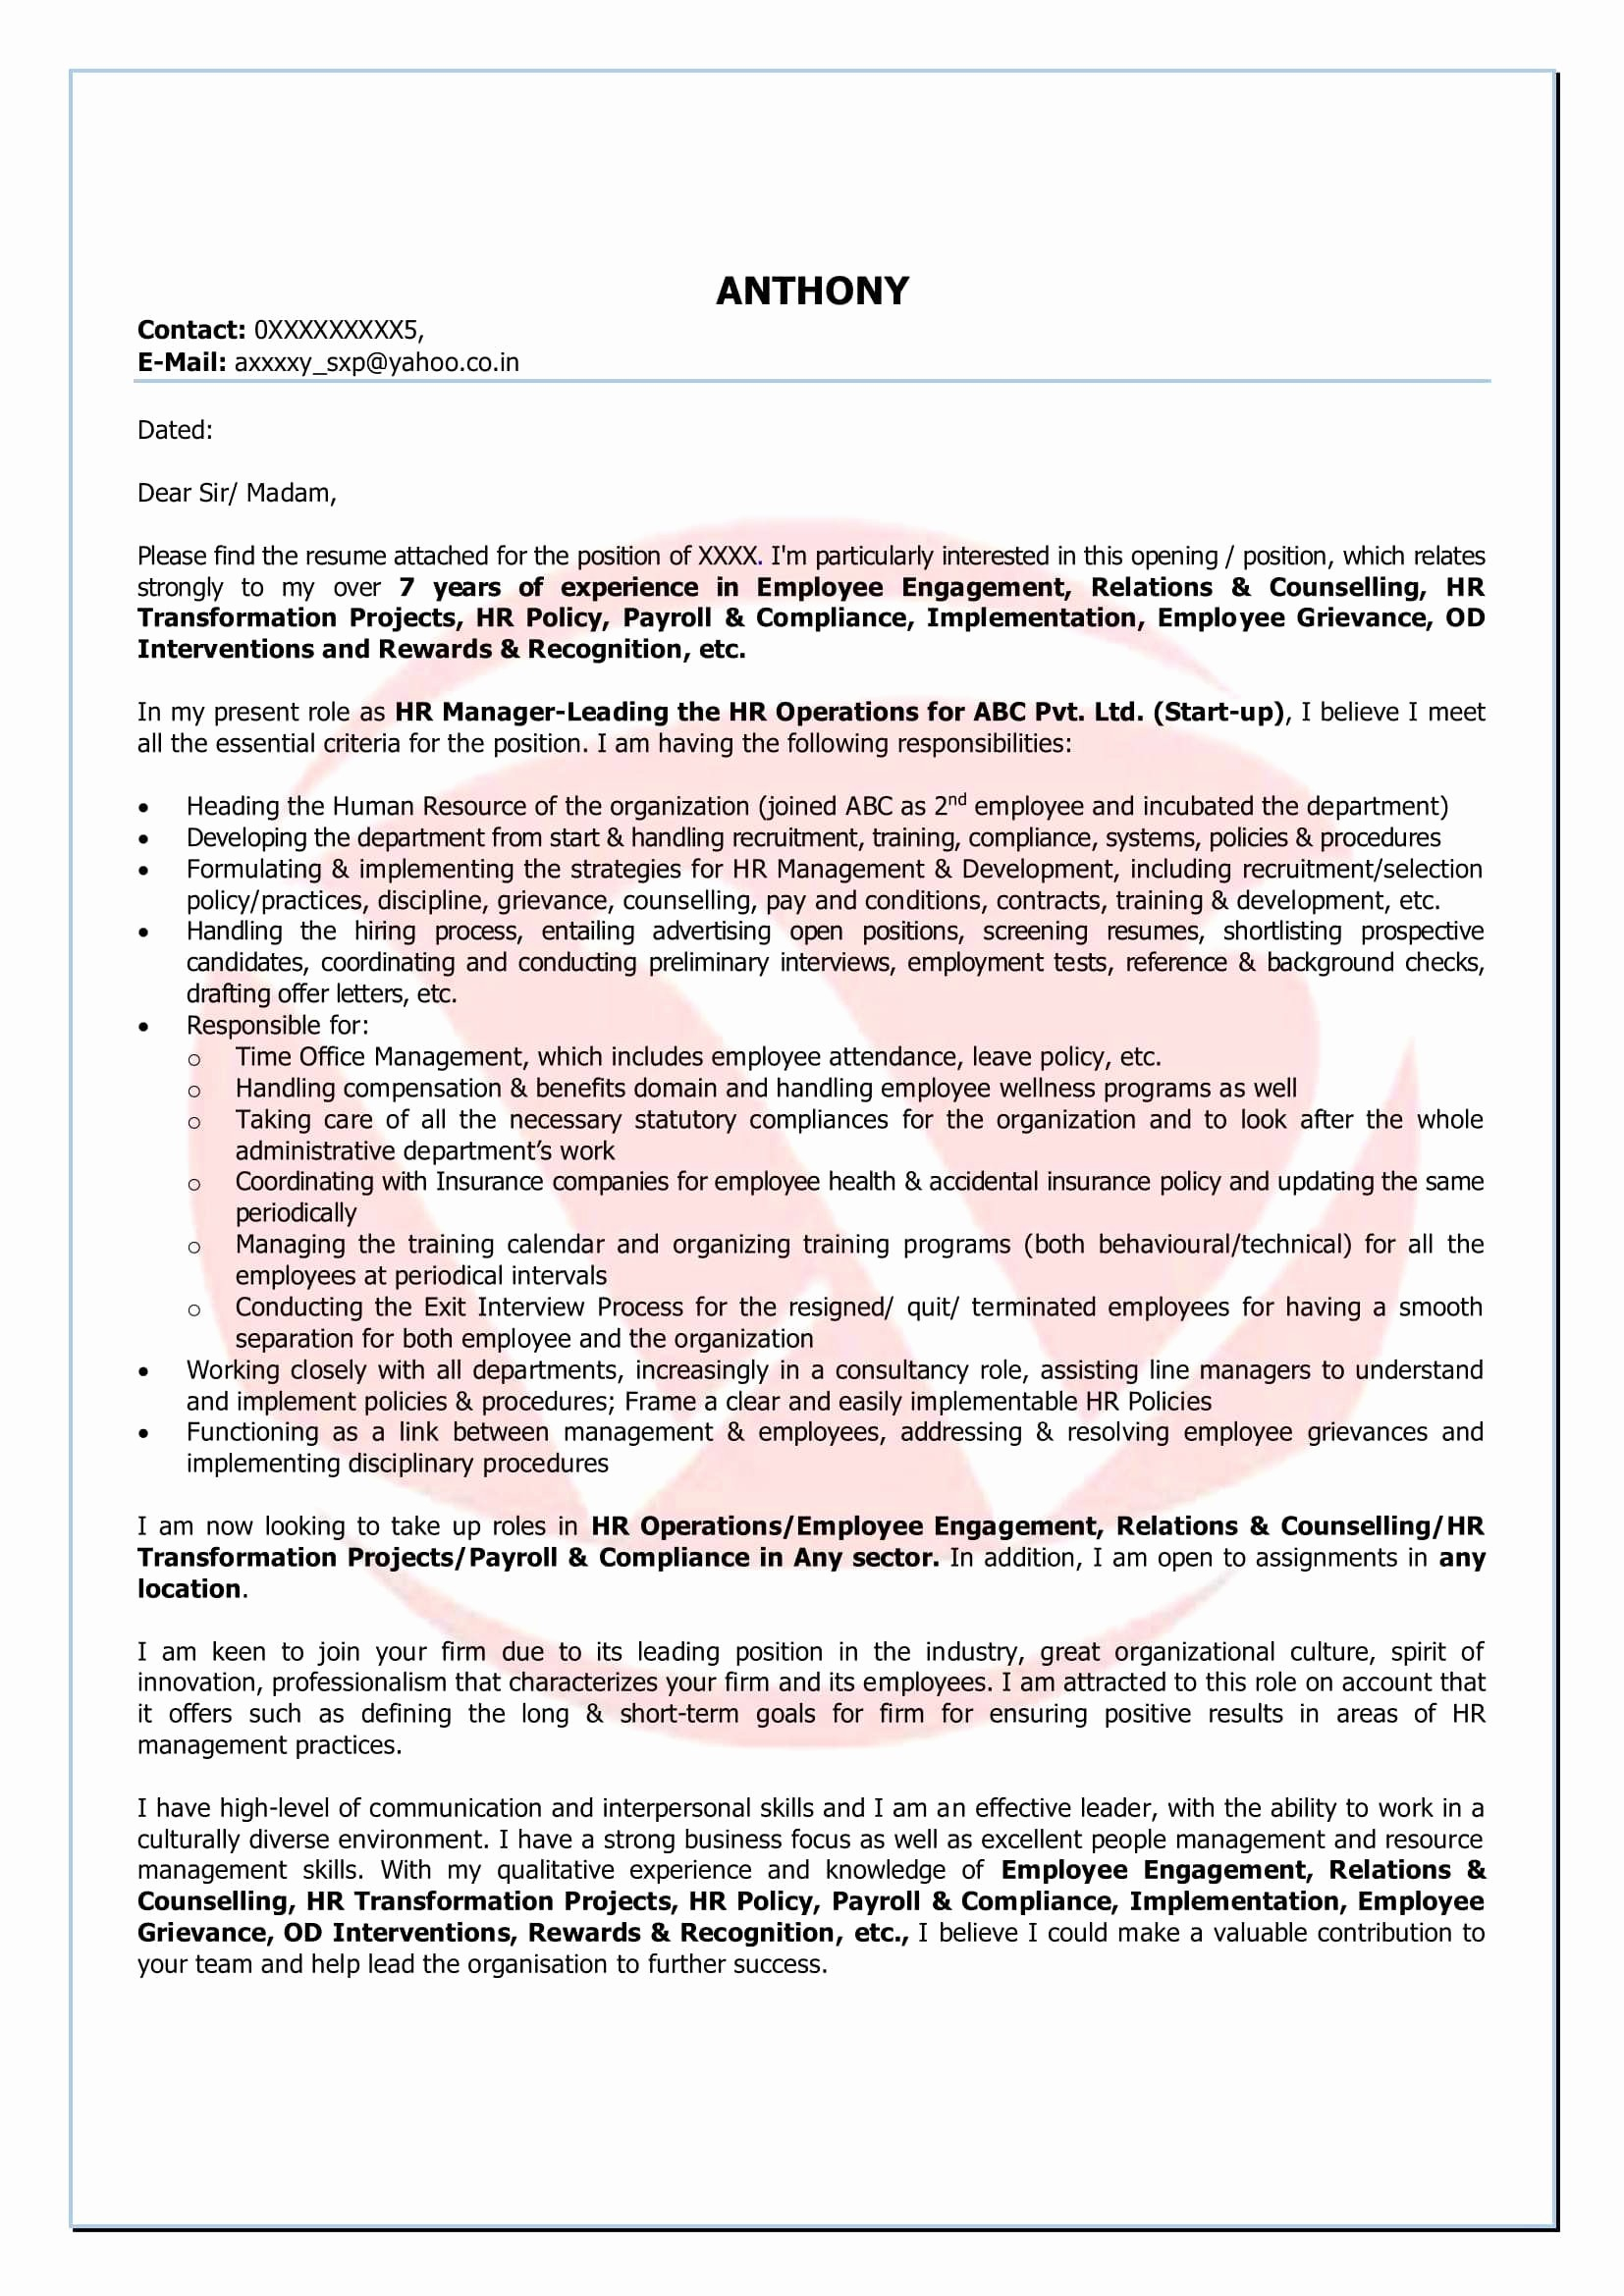 Debt Consolidation Letter Template - Inspirational Job Application Email Template